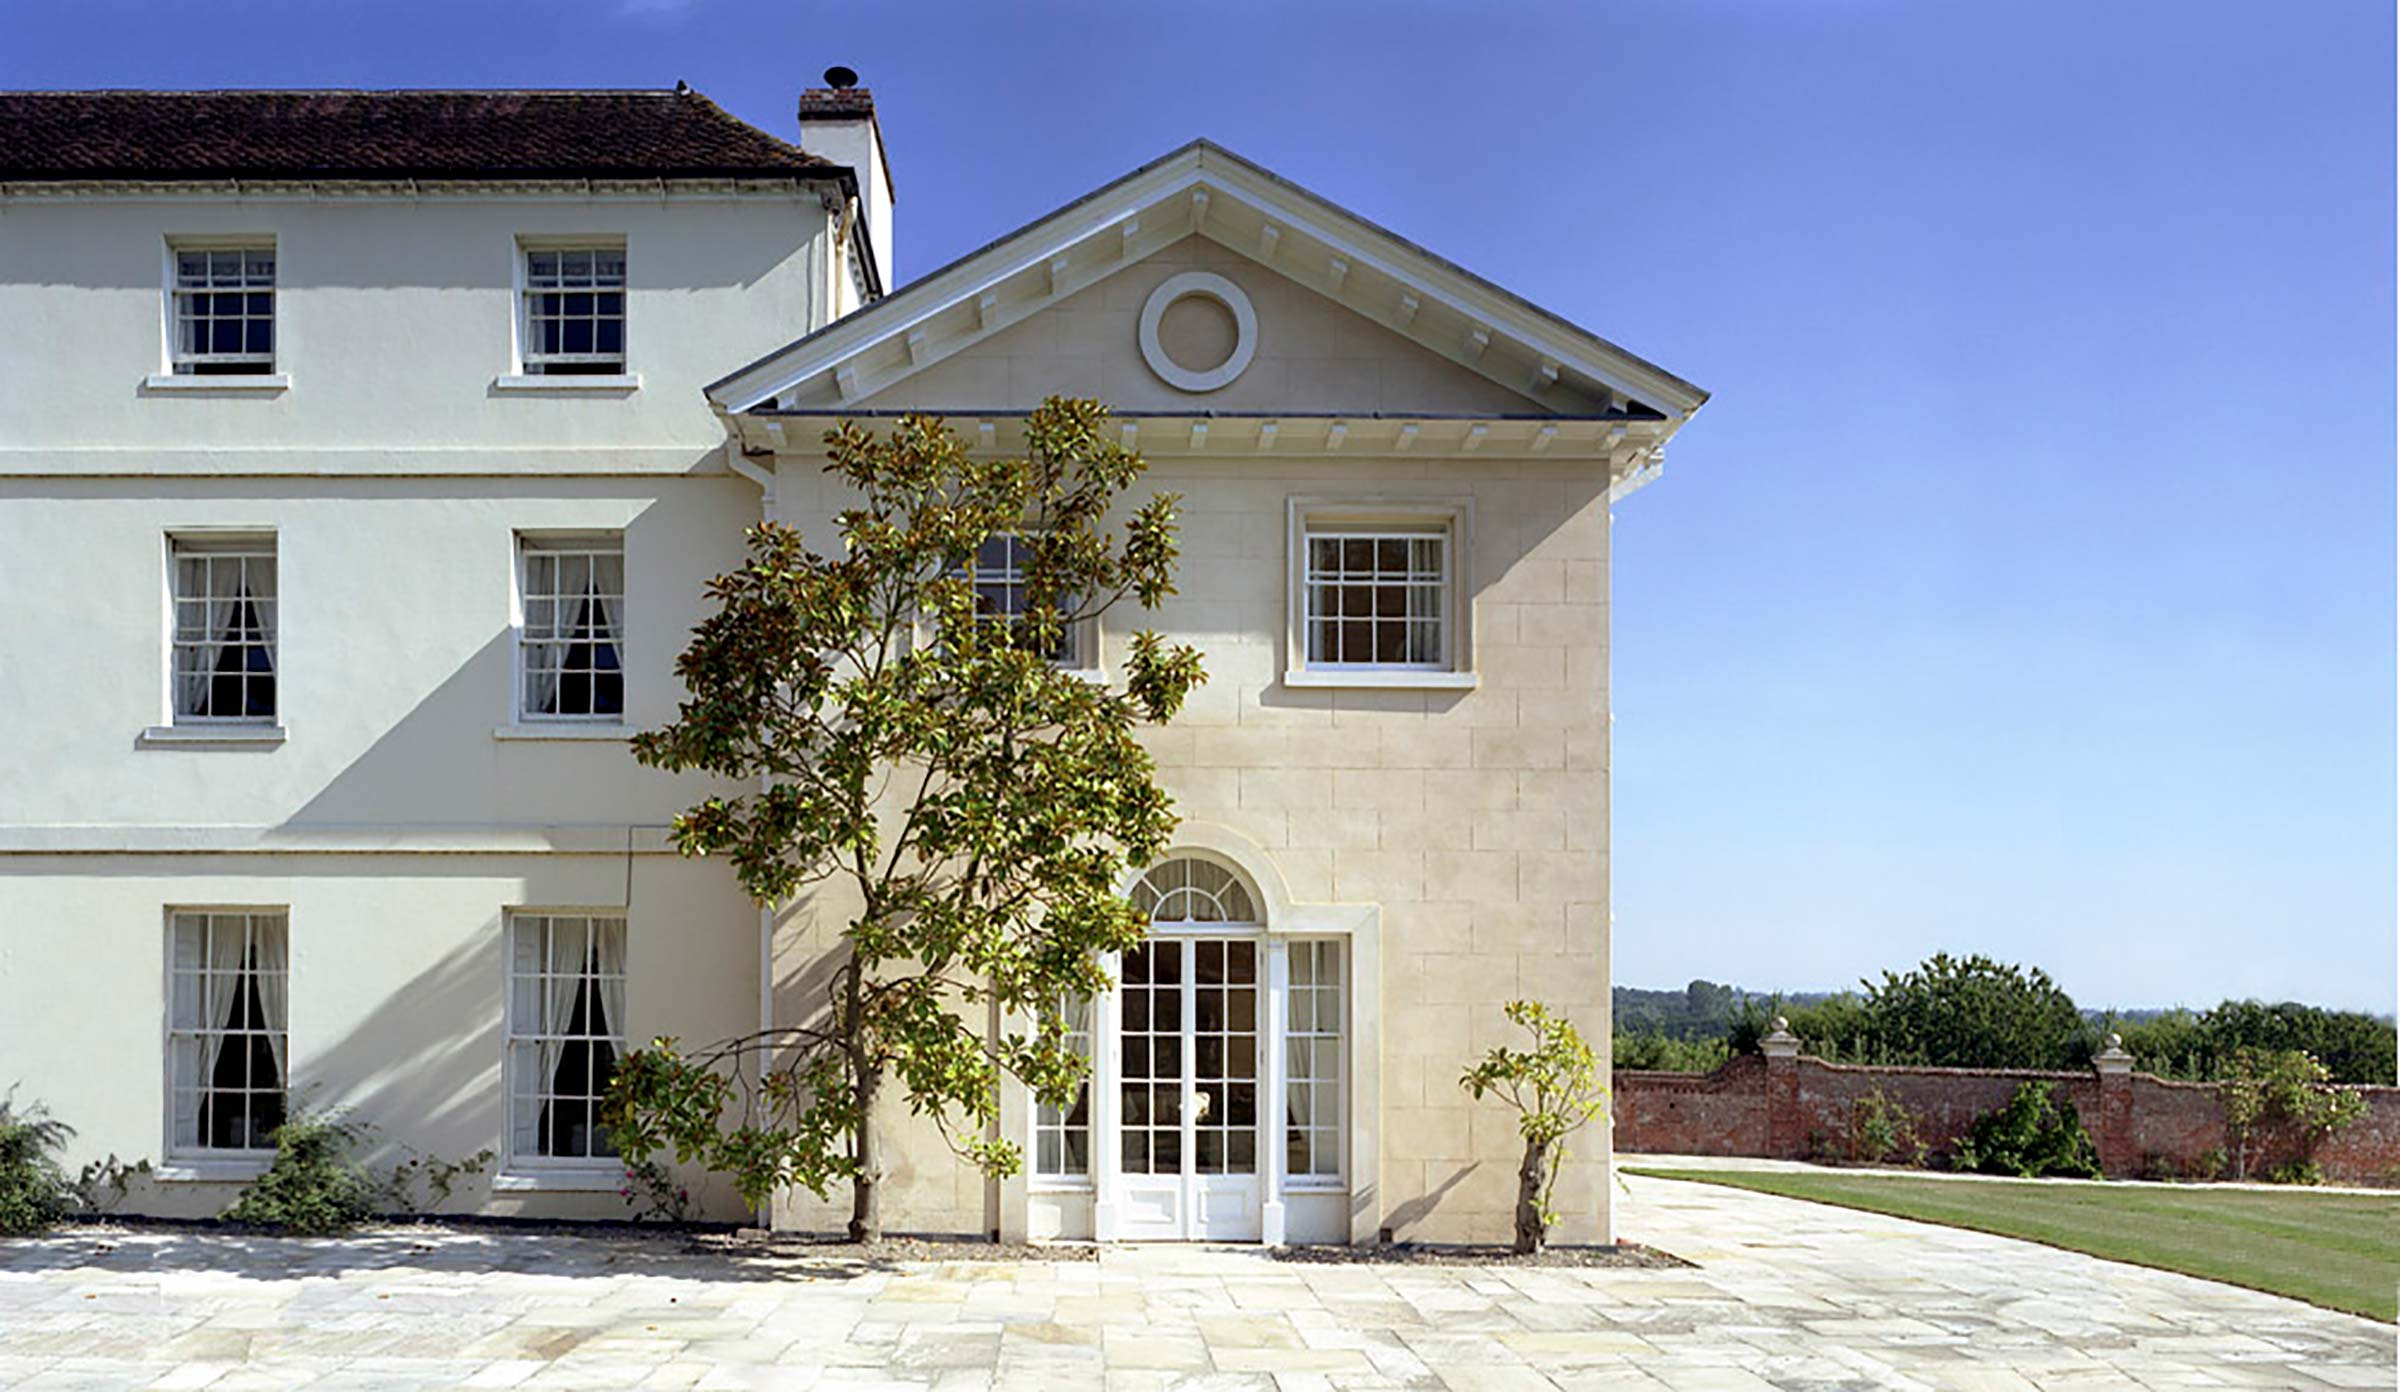 Extension & consolidation of Georgian house in Hampshire